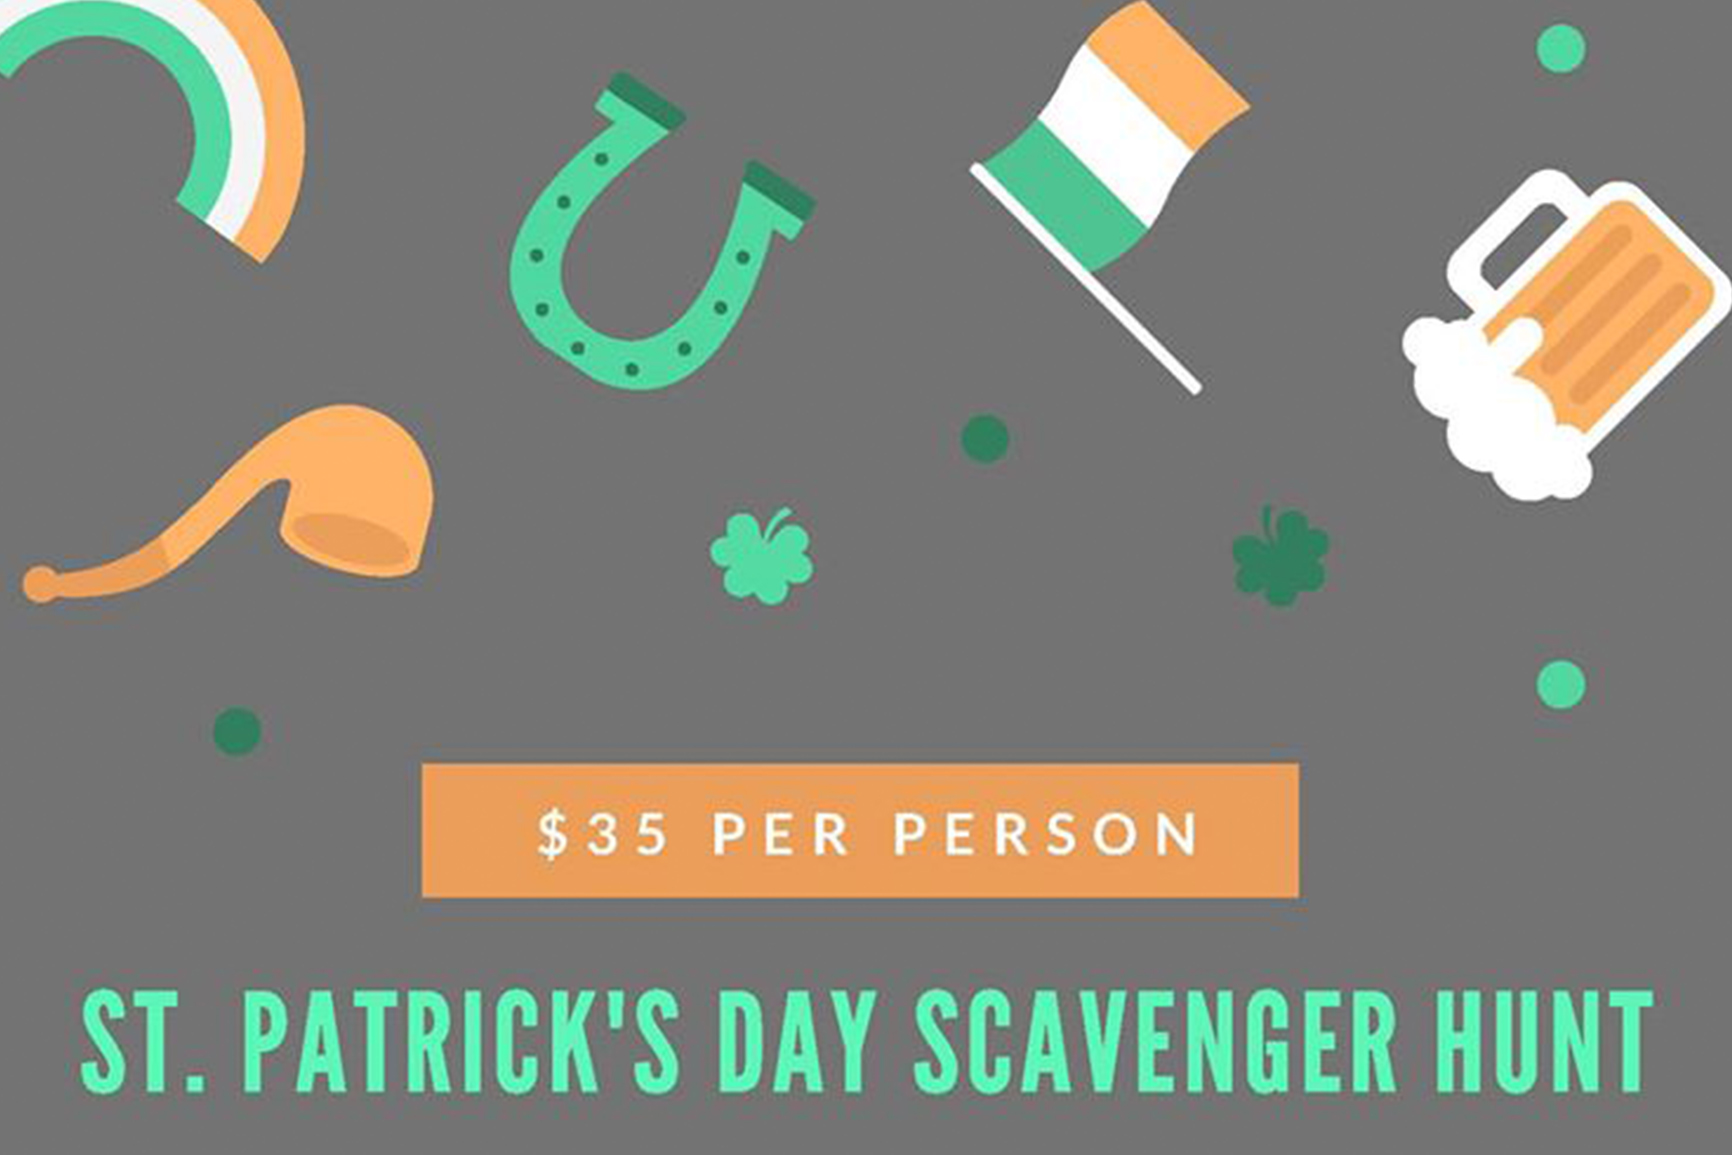 St. Patricks Day Scavenger Hunt